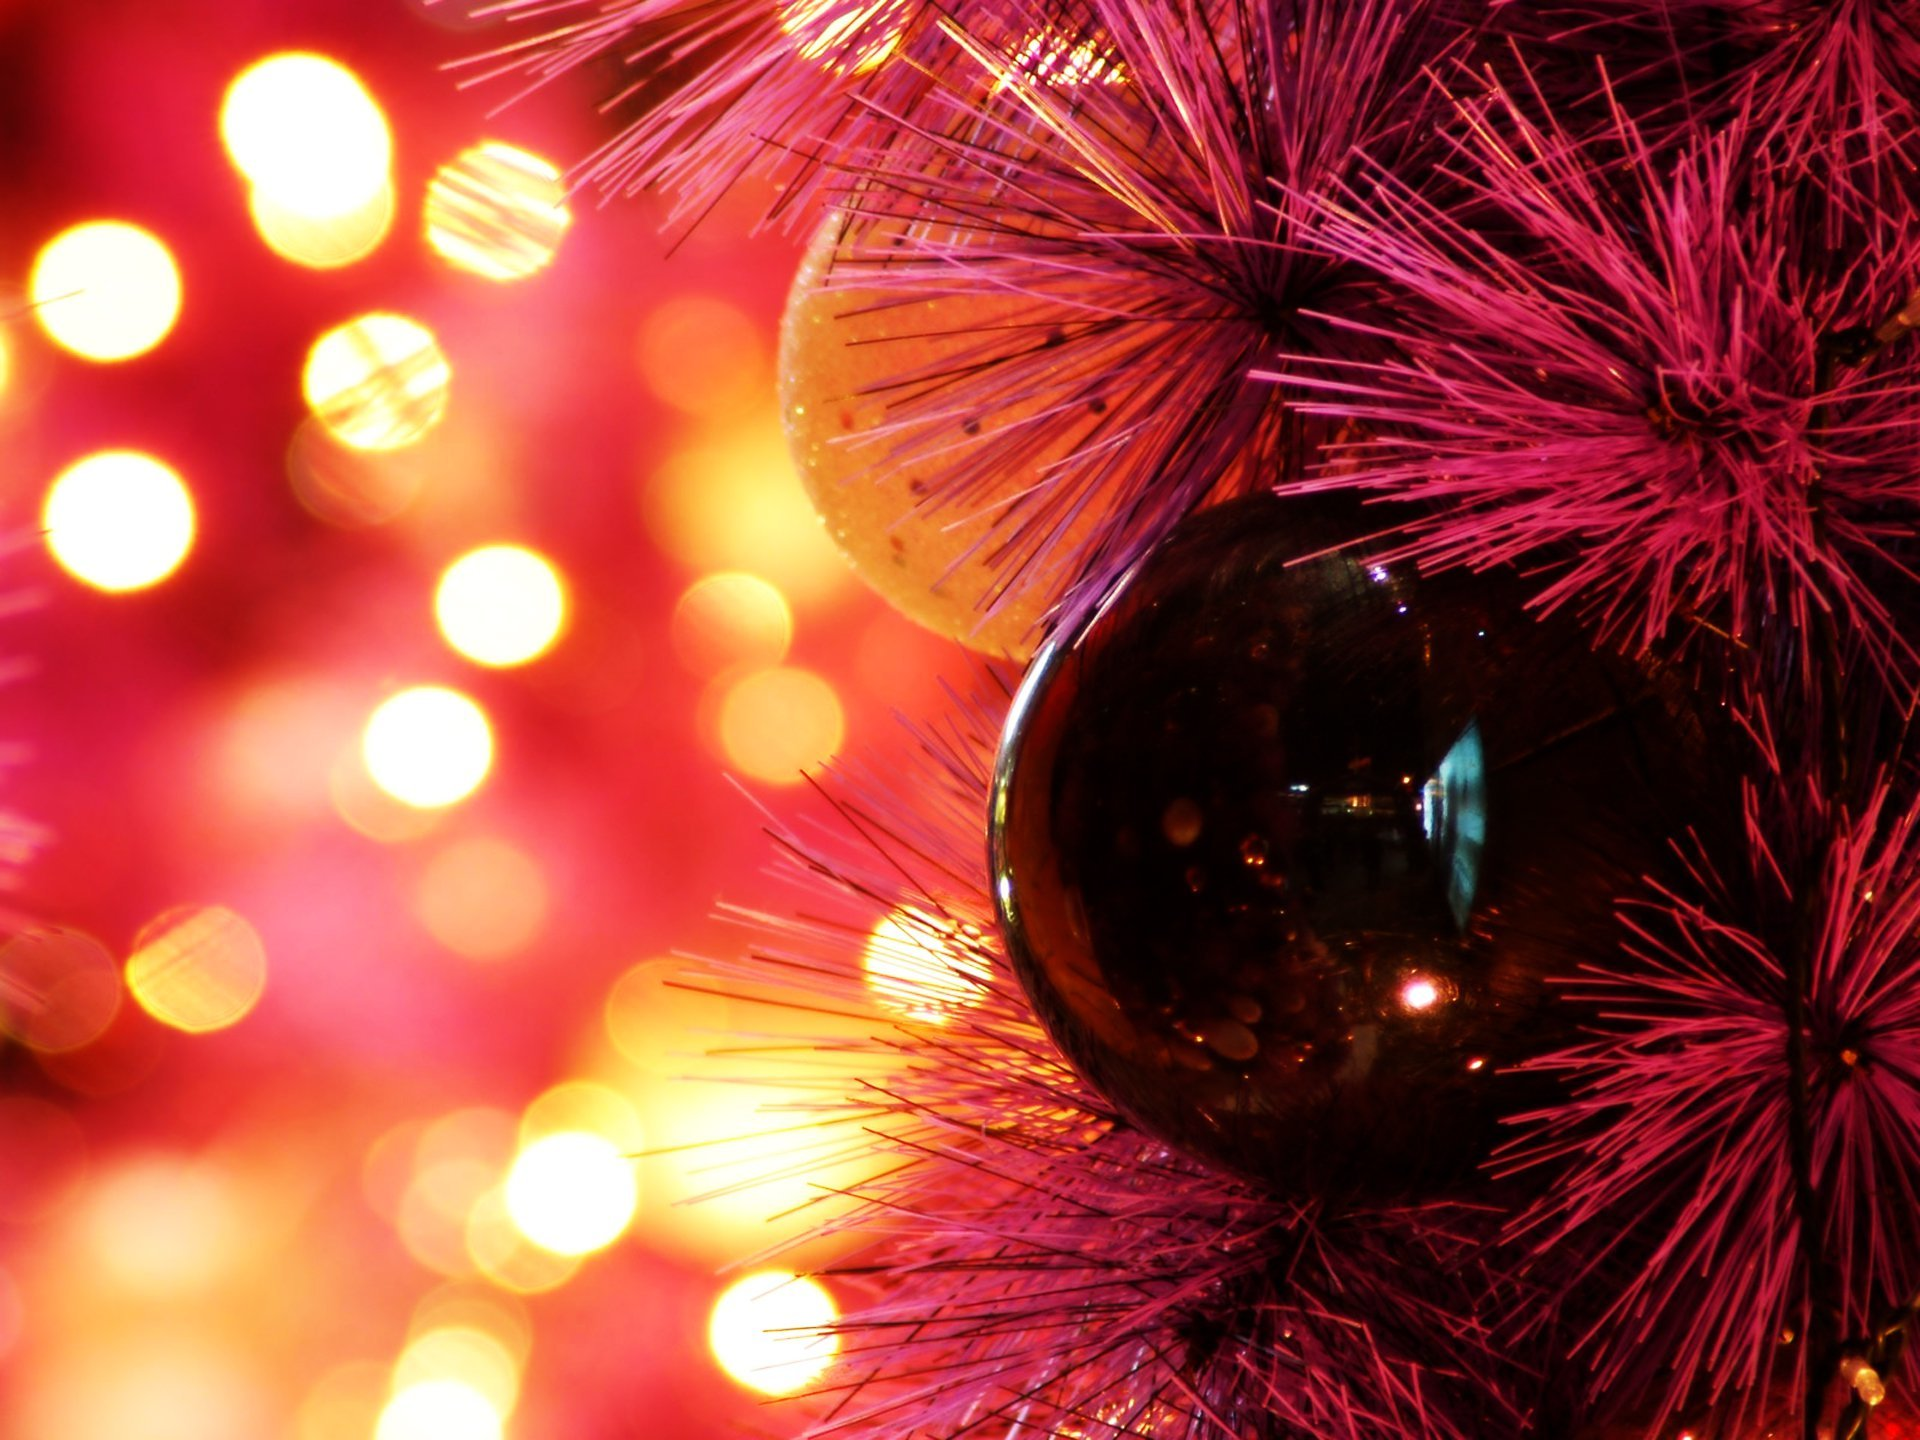 Image: Flare, bokeh, balls, branch, red background